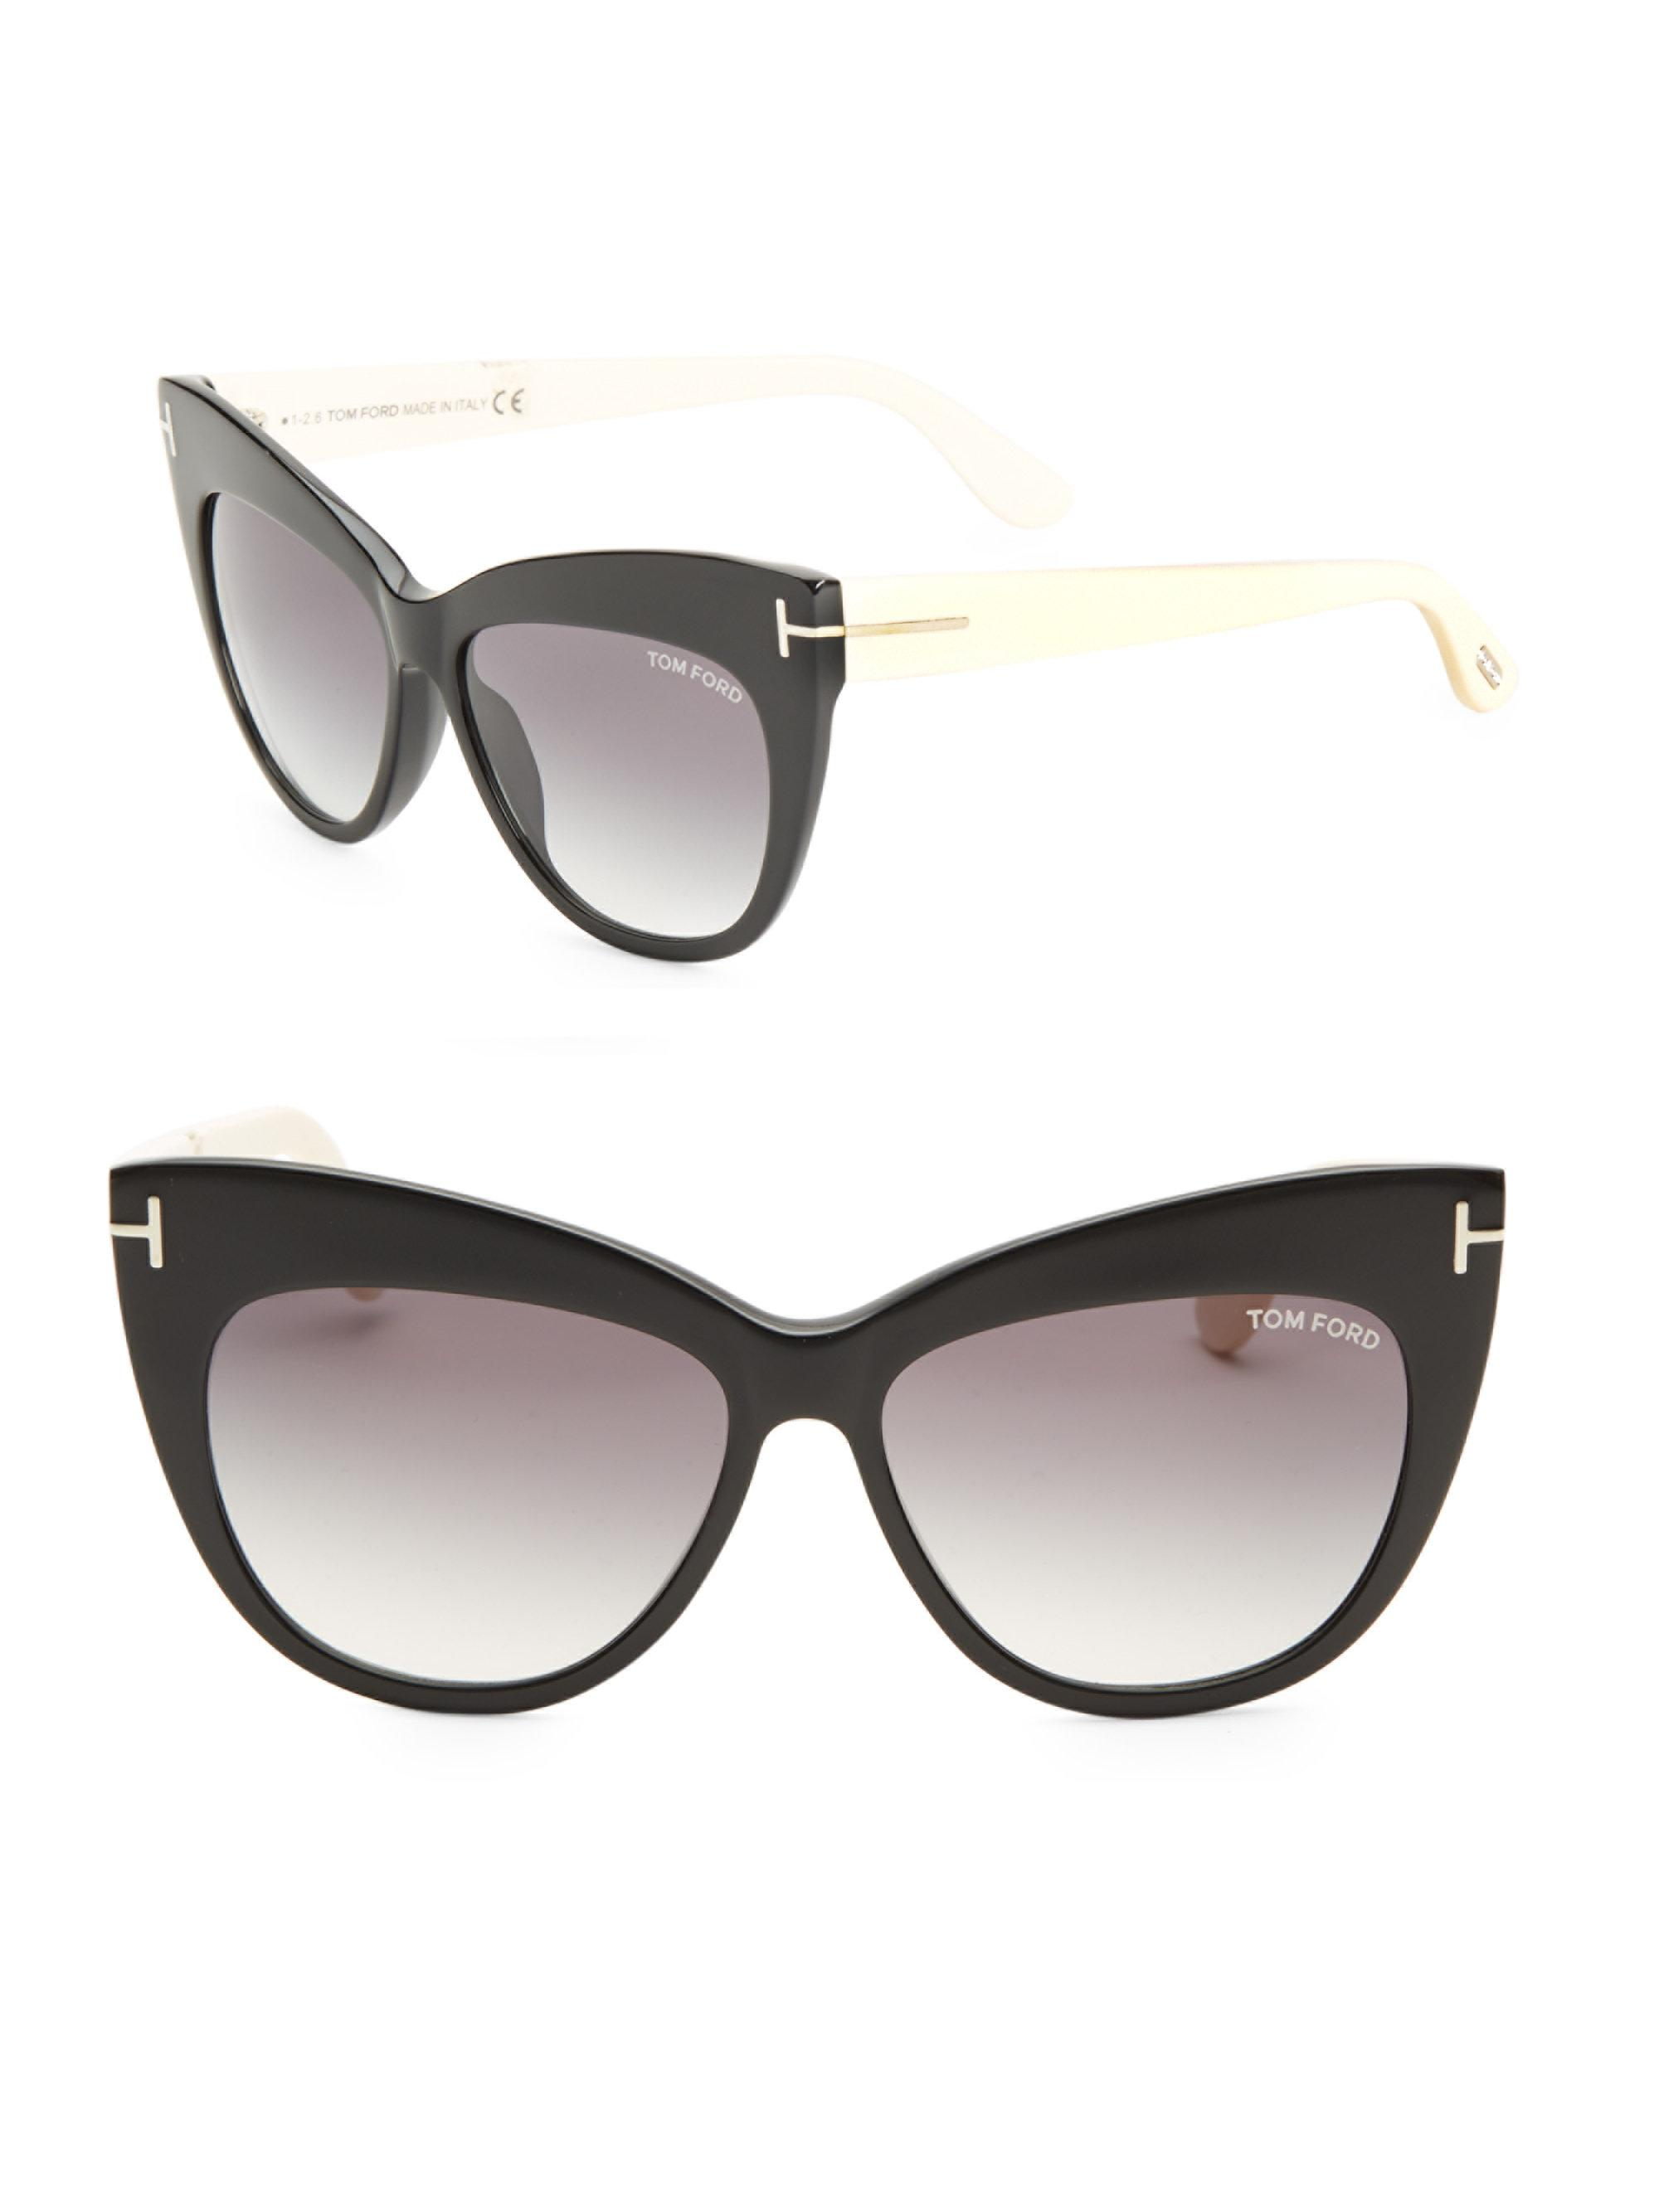 a4608c27907b Gallery. Previously sold at: Saks Fifth Avenue · Women's Tom Ford Cat Eye